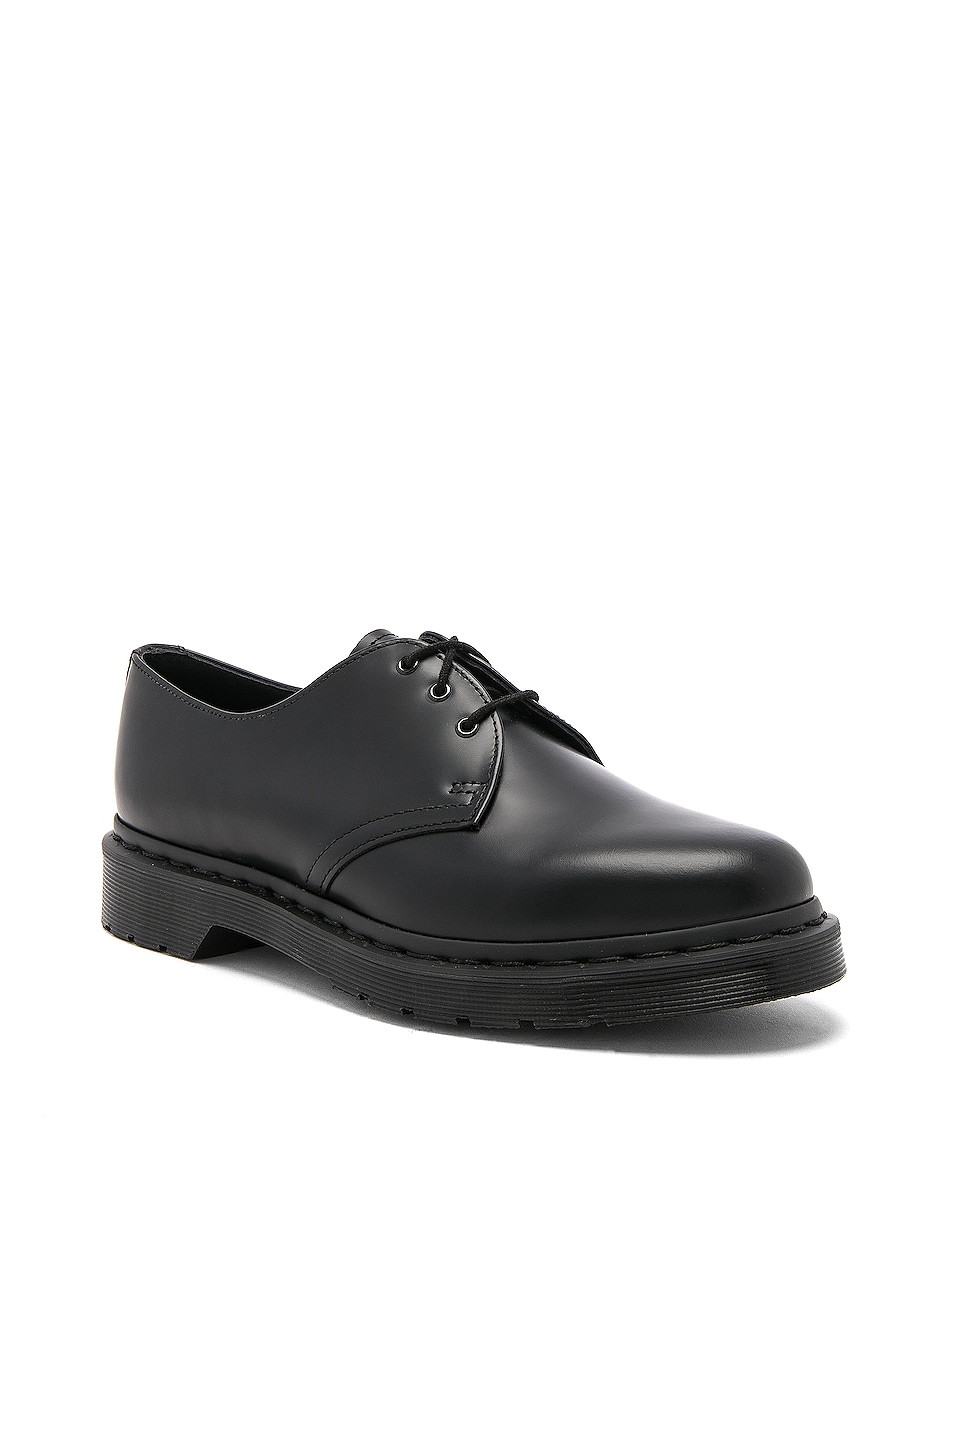 Image 2 of Dr. Martens 1461 3 Eye Gibson in Black Mono